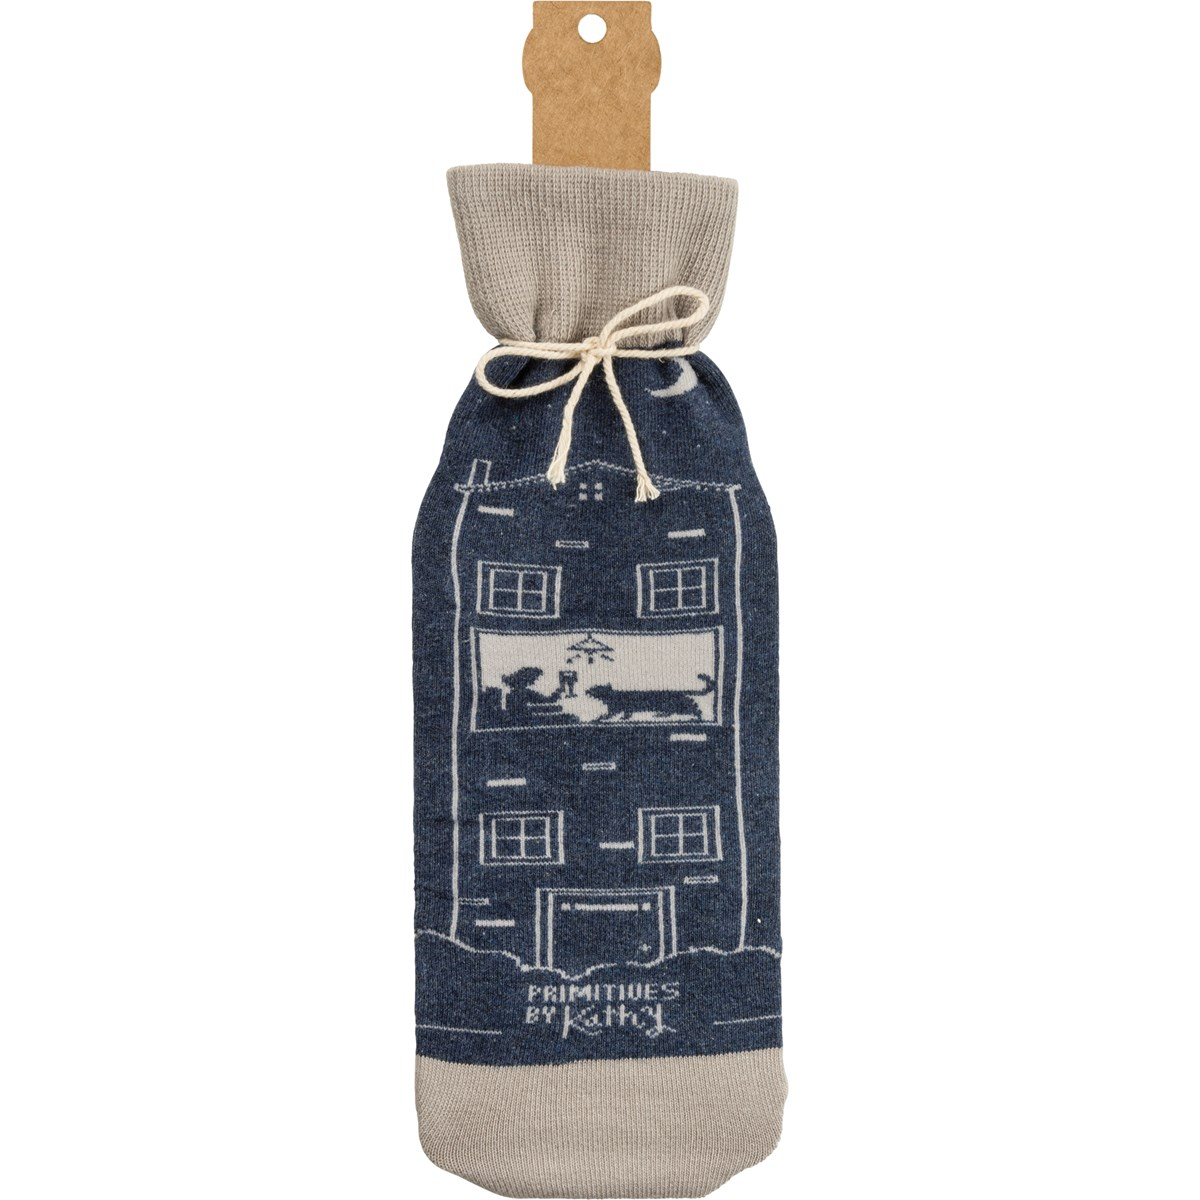 "Bottle Sock - Not Drinking Alone If Cat Home - 3.50"" x 11.25"", Fits 750mL to 1.5L bottles - Cotton, Nylon, Spandex"